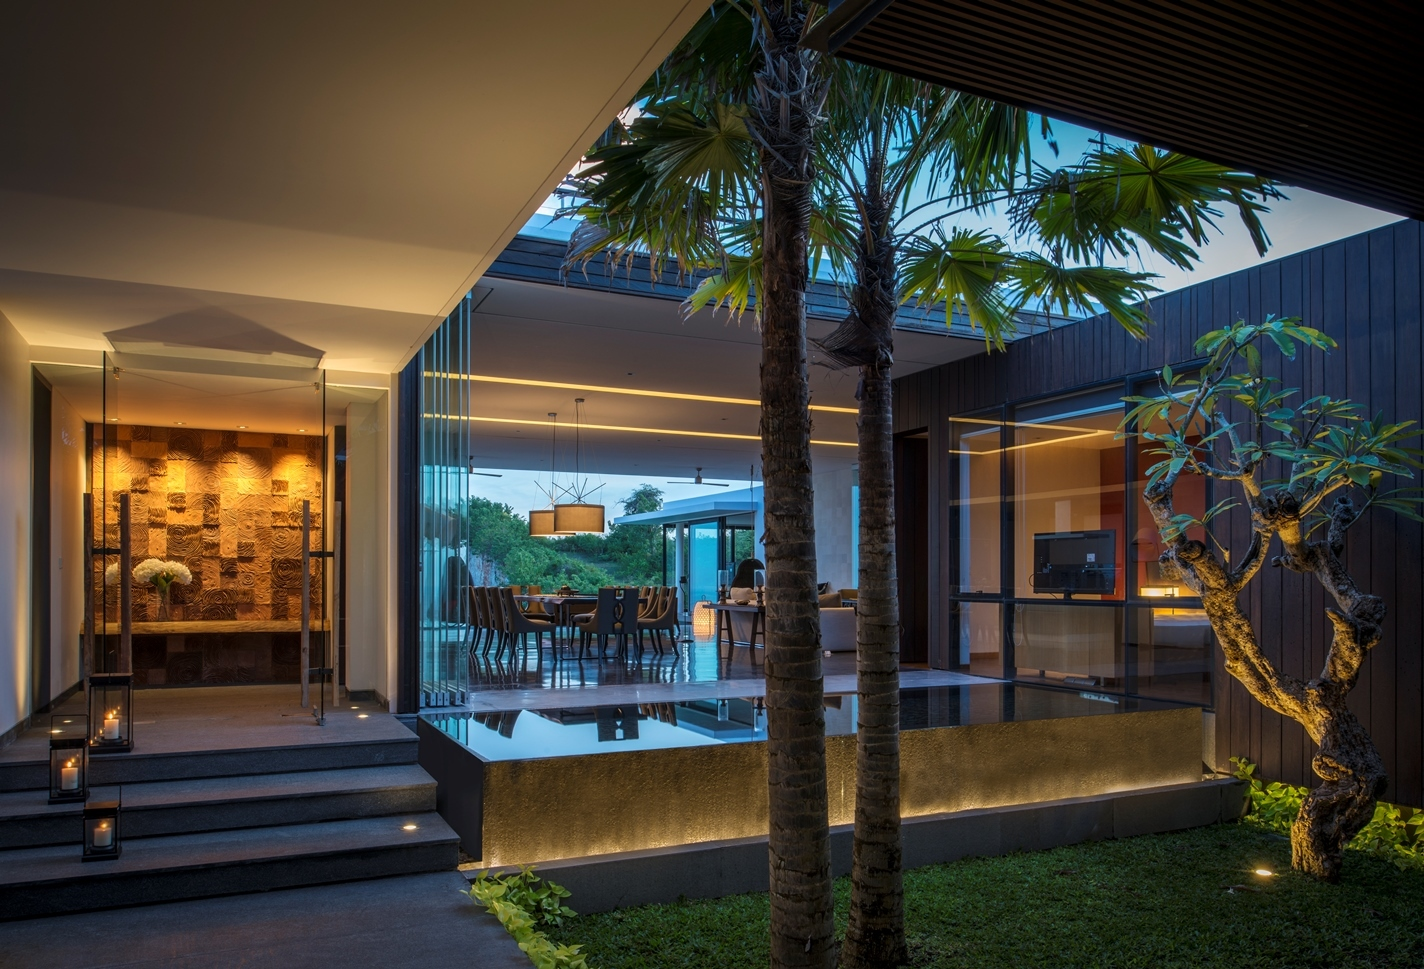 Home Decor Bali Modern Resort Villa With Balinese Theme Idesignarch